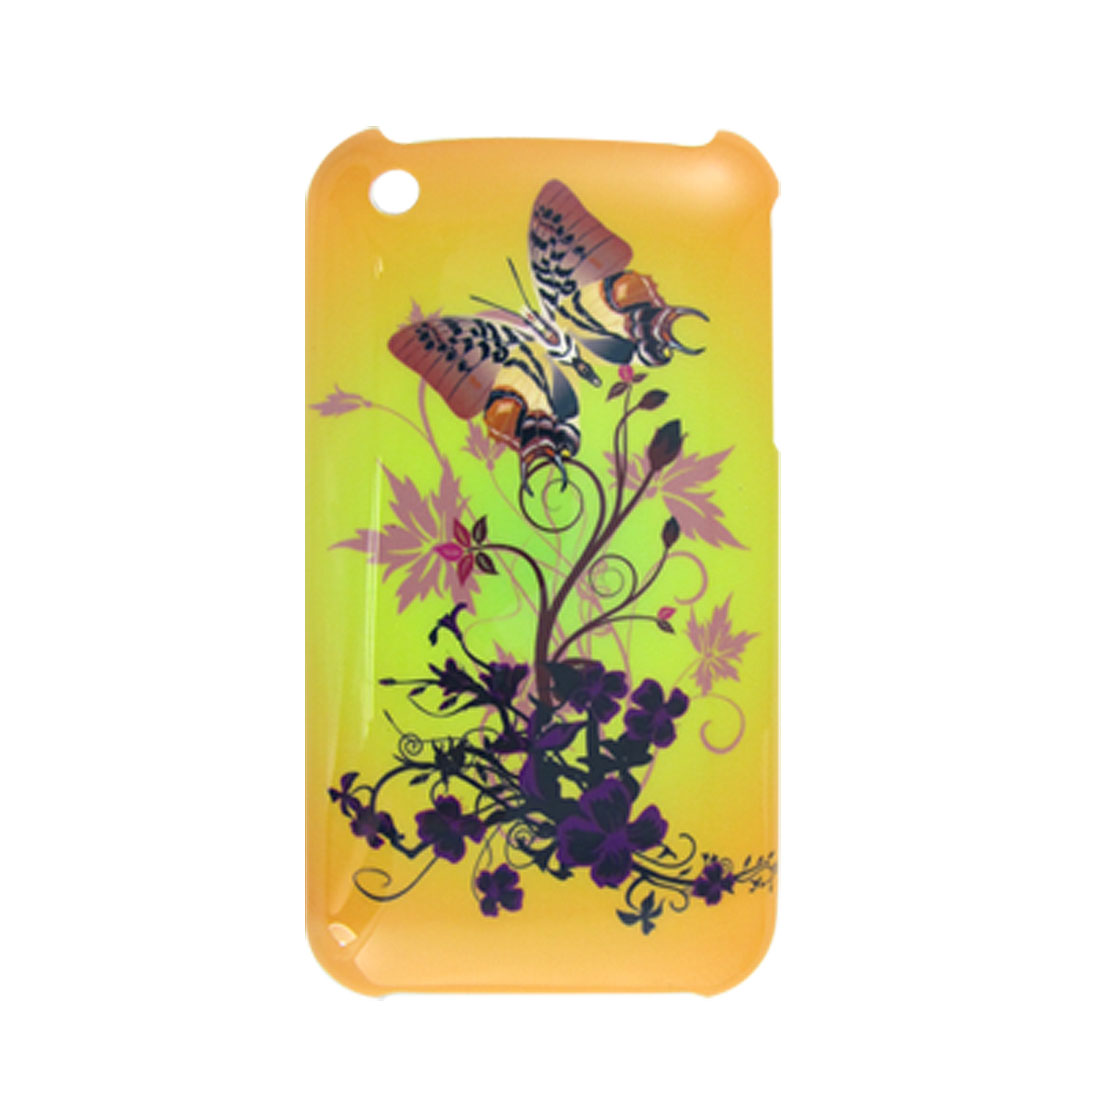 Butterfly Print Case + Screen Protector for iPhone 3G